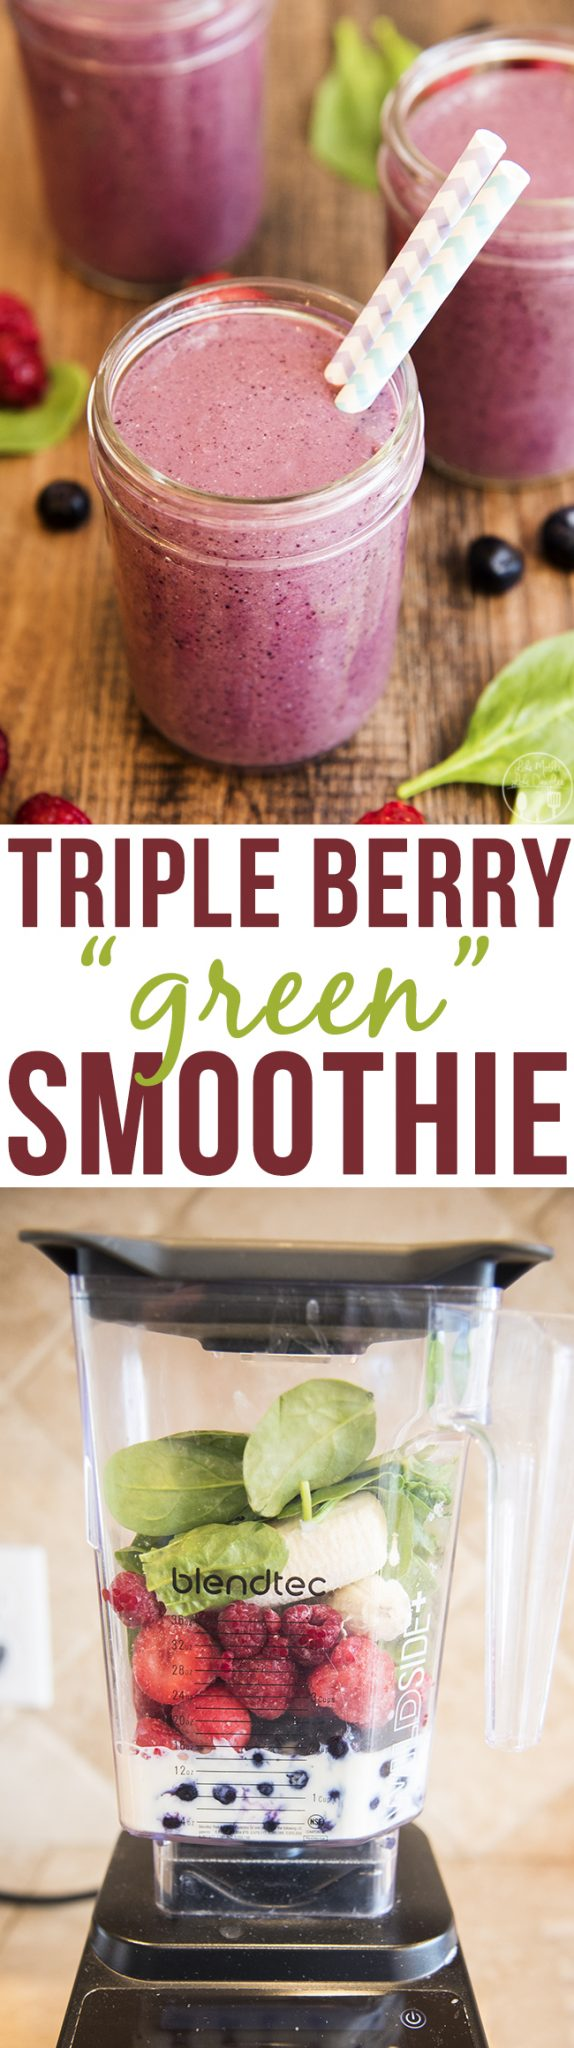 Triple Berry Green Smoothie - This smoothie is packed full of three kinds of berries, soy milk and yogurt, banana and spinach for a smoothie that is full of antioxidants, protein, fiber, and more! Perfect for a burst of energy!